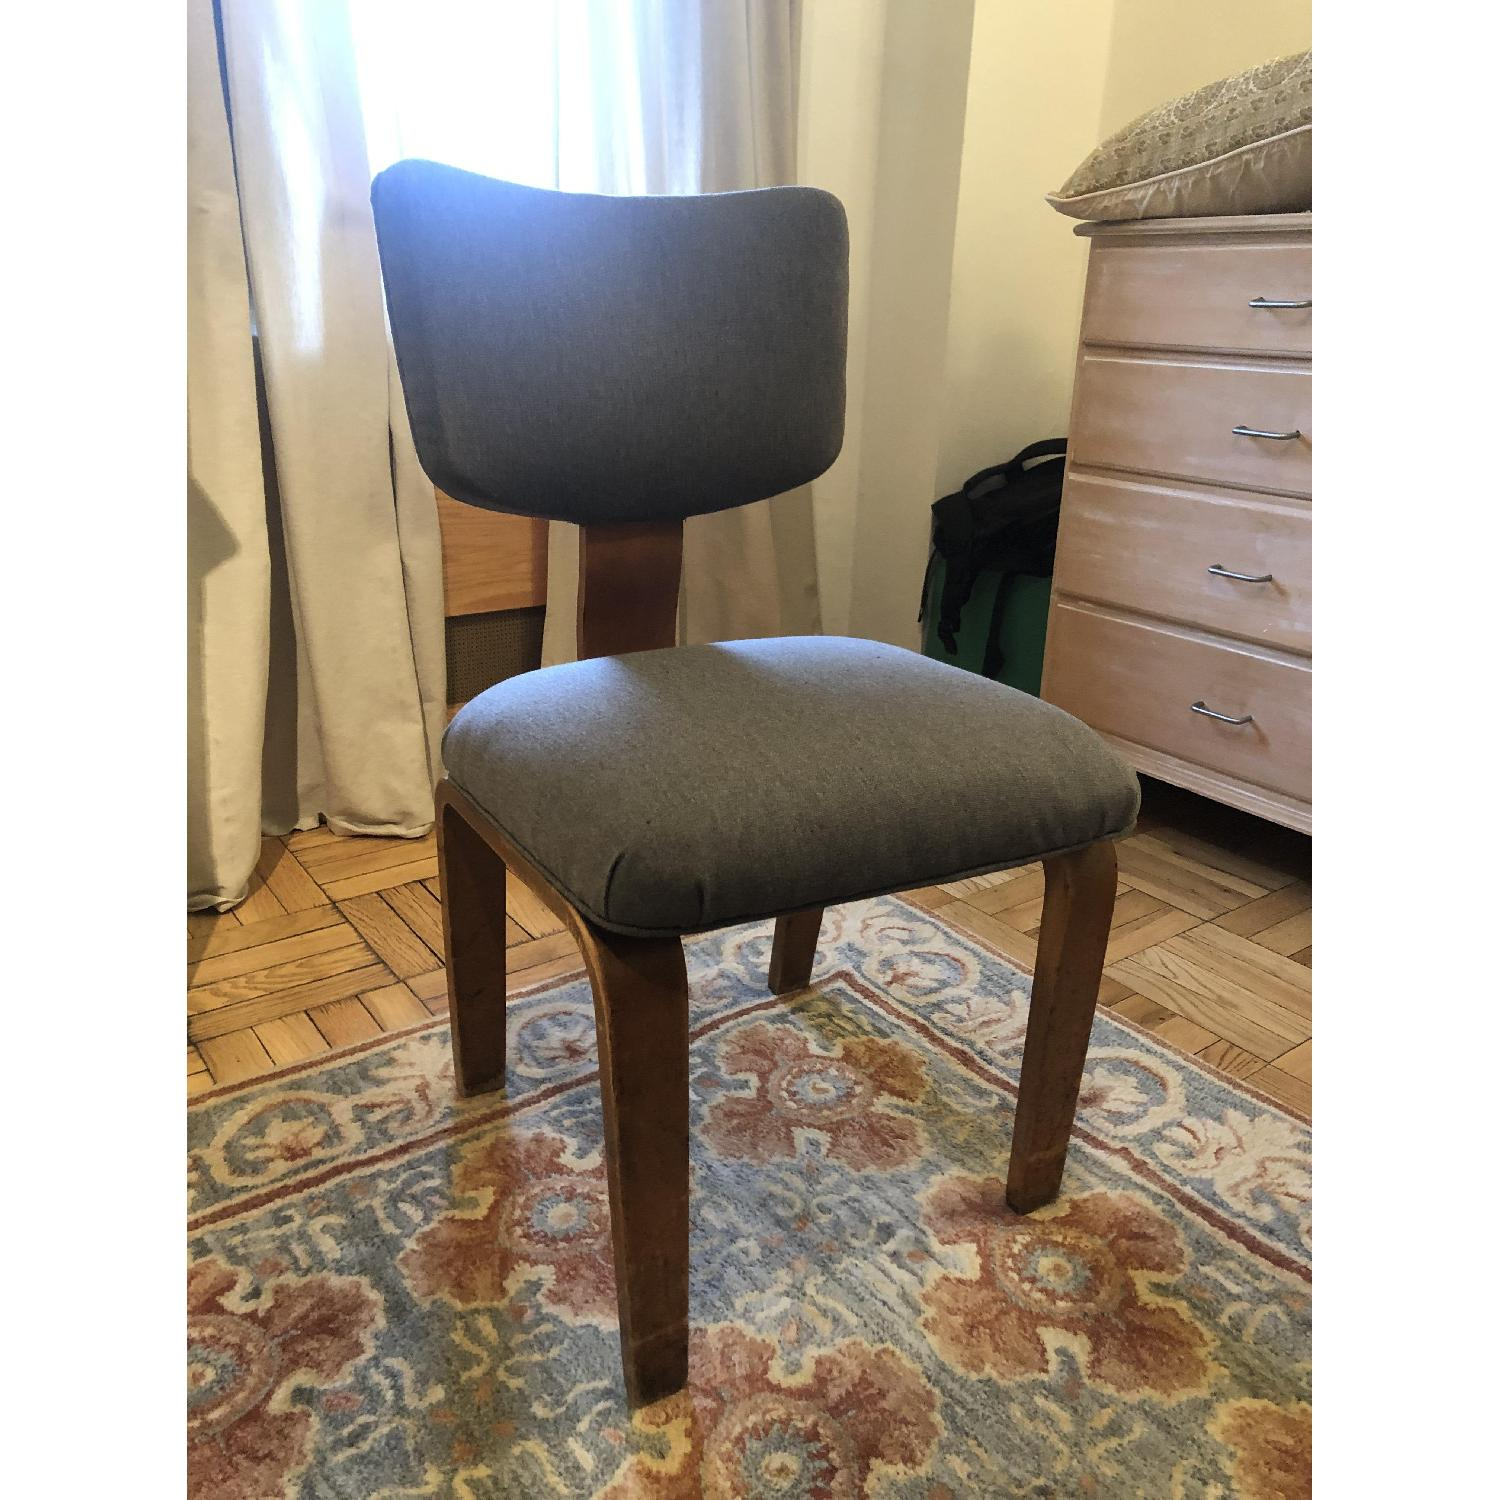 Thonet mid-century modern side chair - image-7